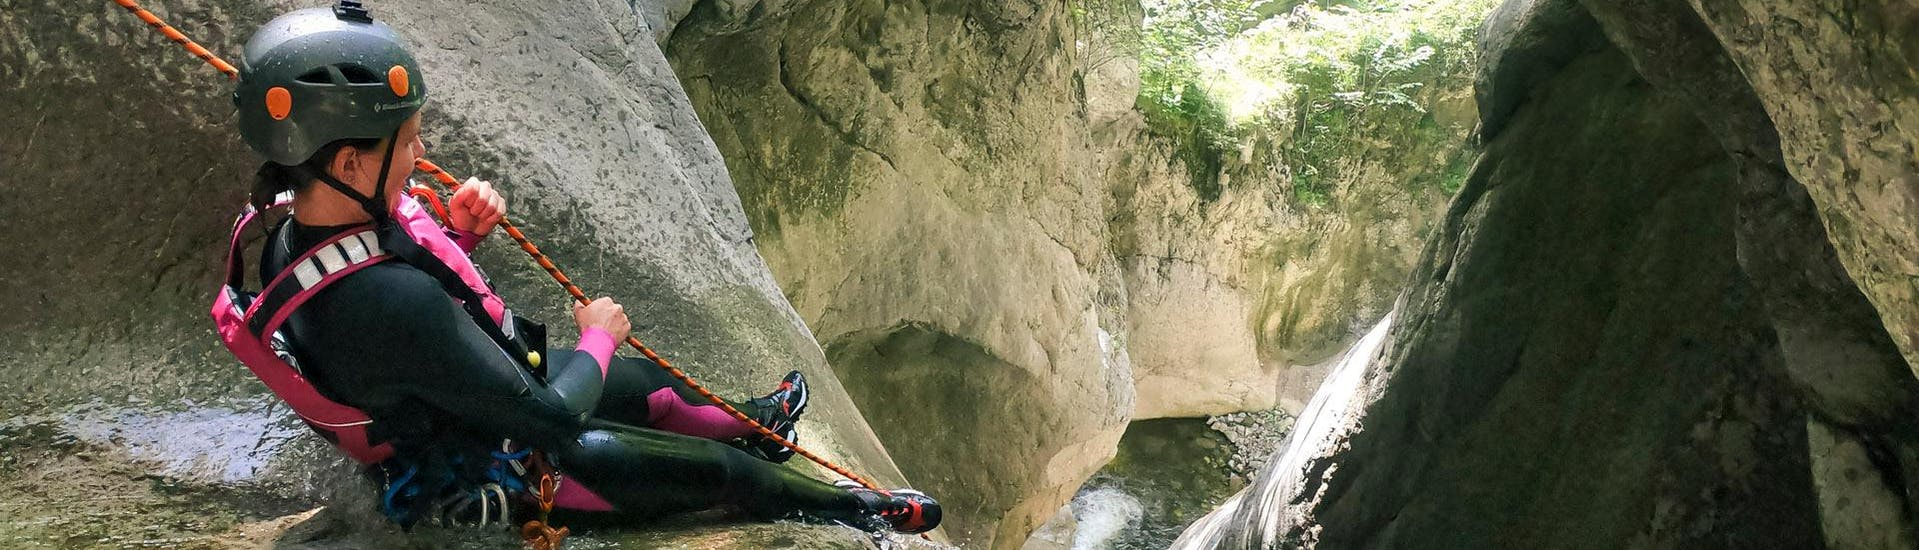 Adventurous Canyoning in the Chli Schliere Gorge